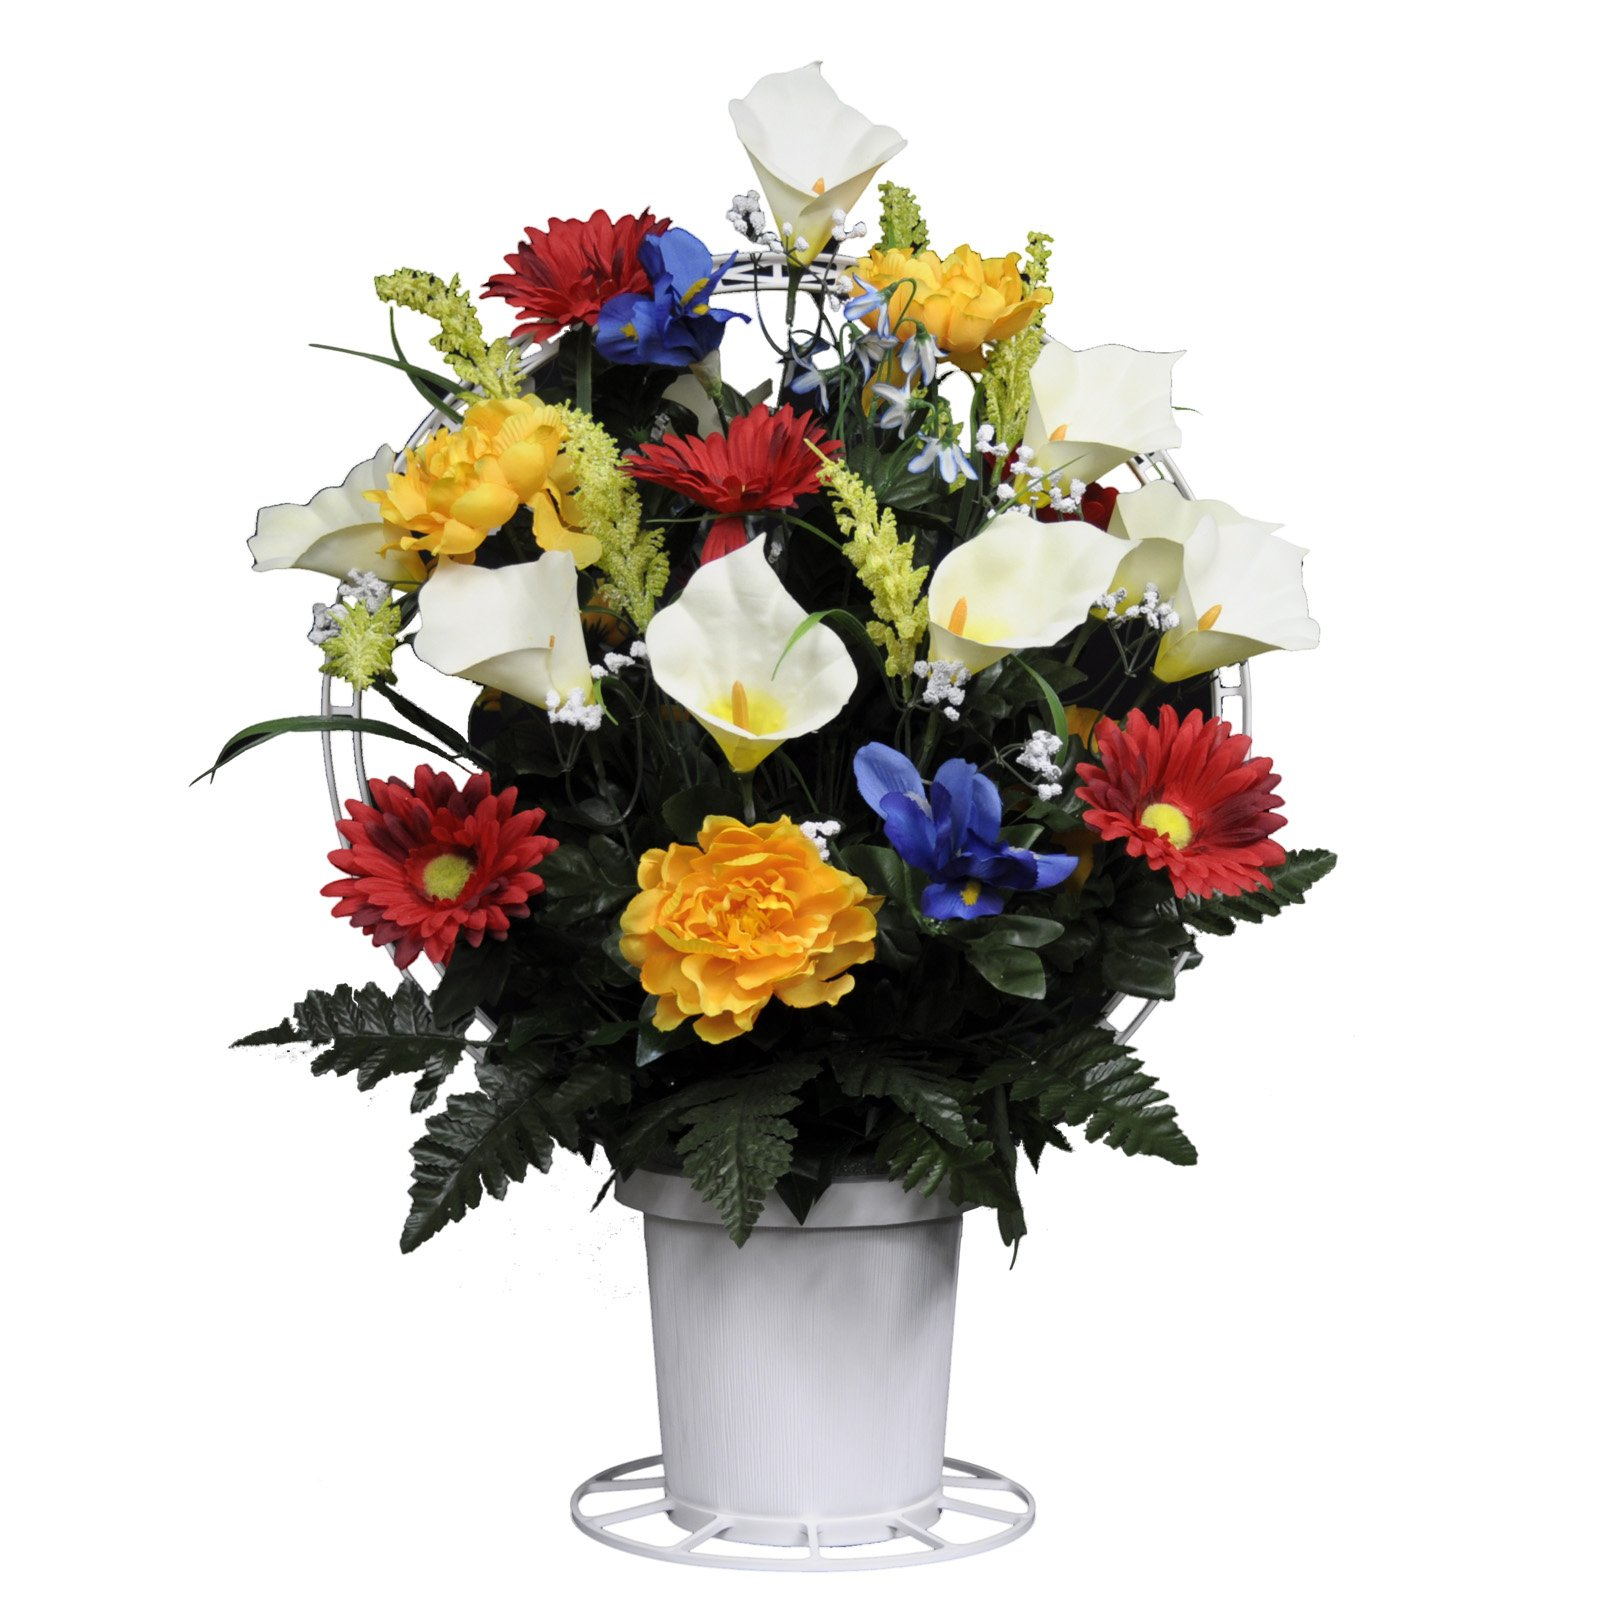 Sympathy-Silks-Artificial-Cemetery-Flowers-Basket–Red-Yellow-Blue-and-White-Mix-of-Silk-Fake-Flowers-for-Outdoor-Grave-Decorations-Non-Bleed-Colors-USA-Made